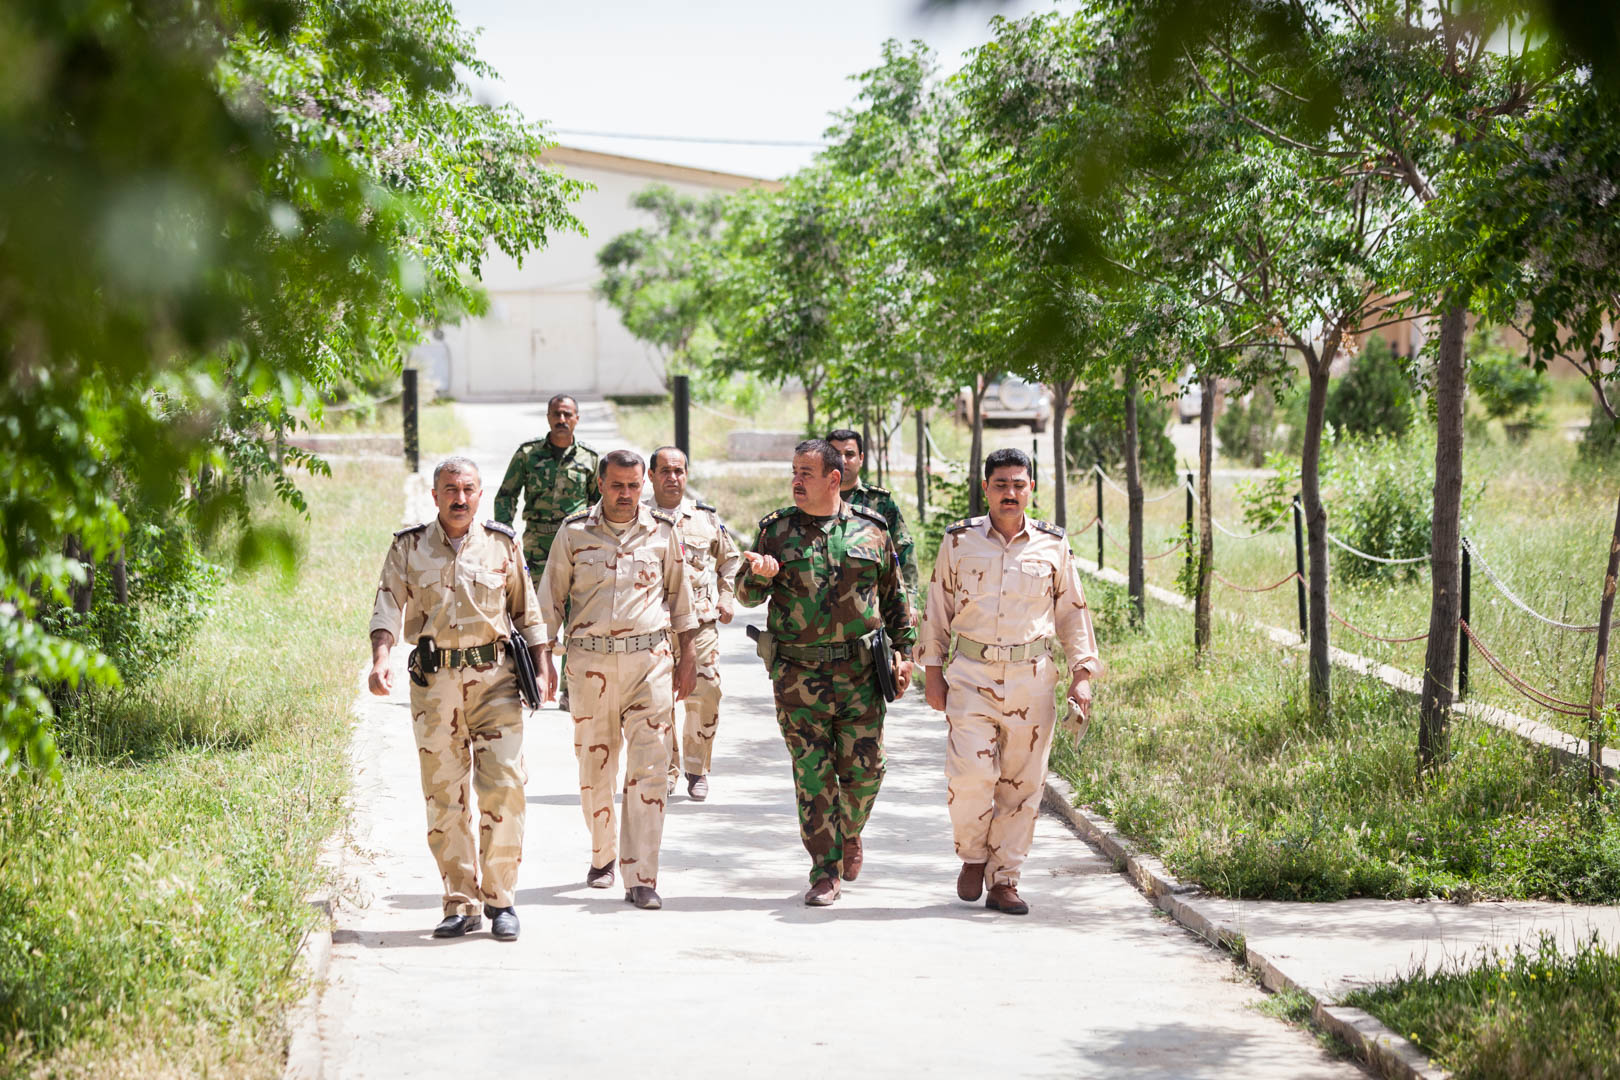 A group of Kurdish officers and officials is walking the Zerewani compound.